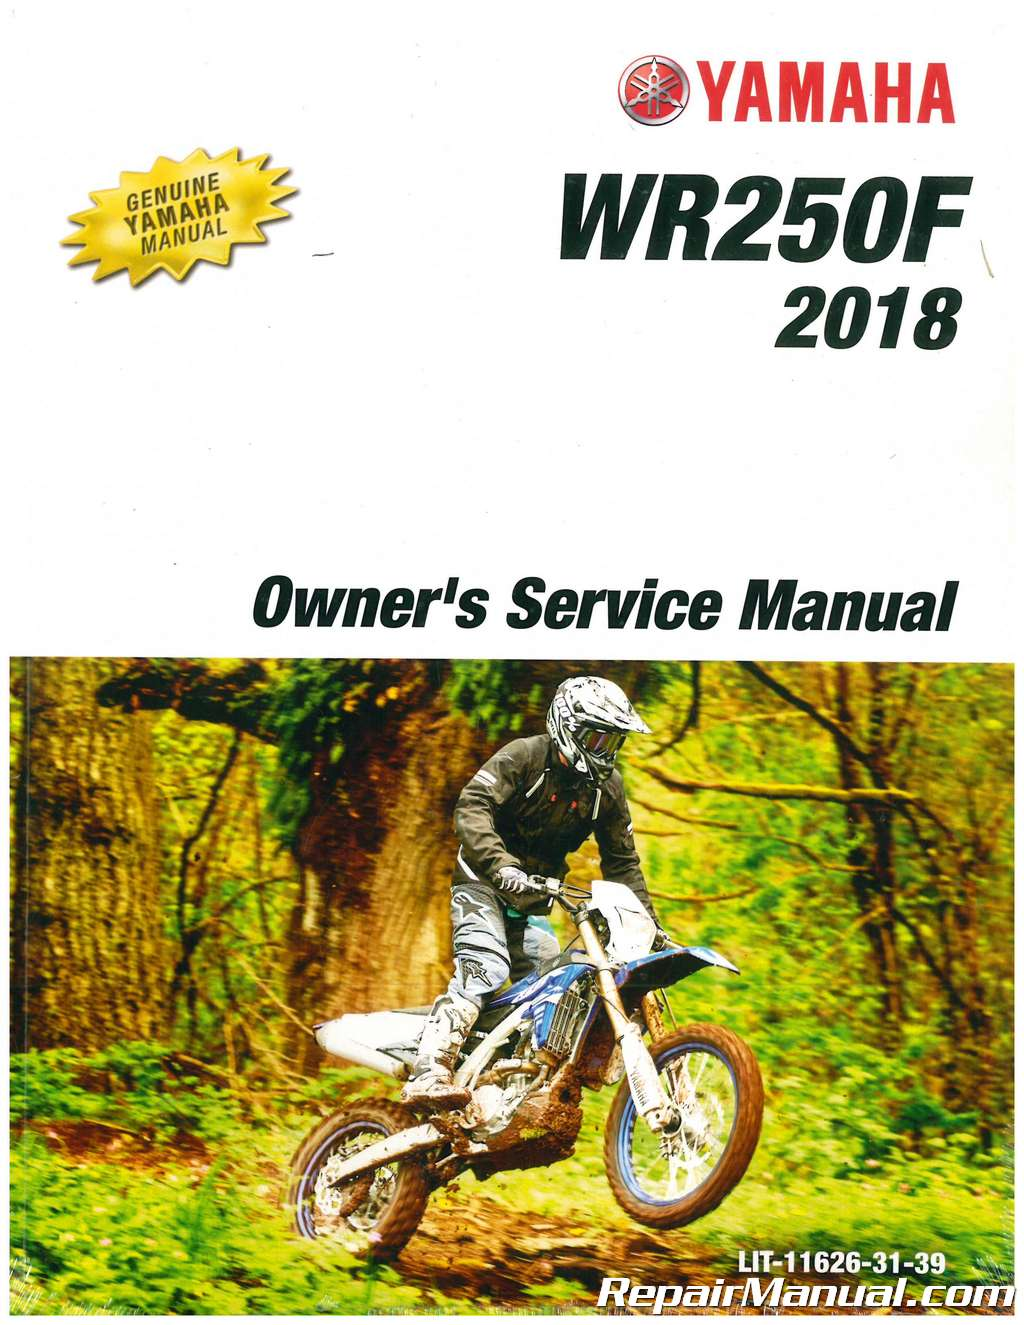 2018 yamaha wr250f motorcycle owners service manual.